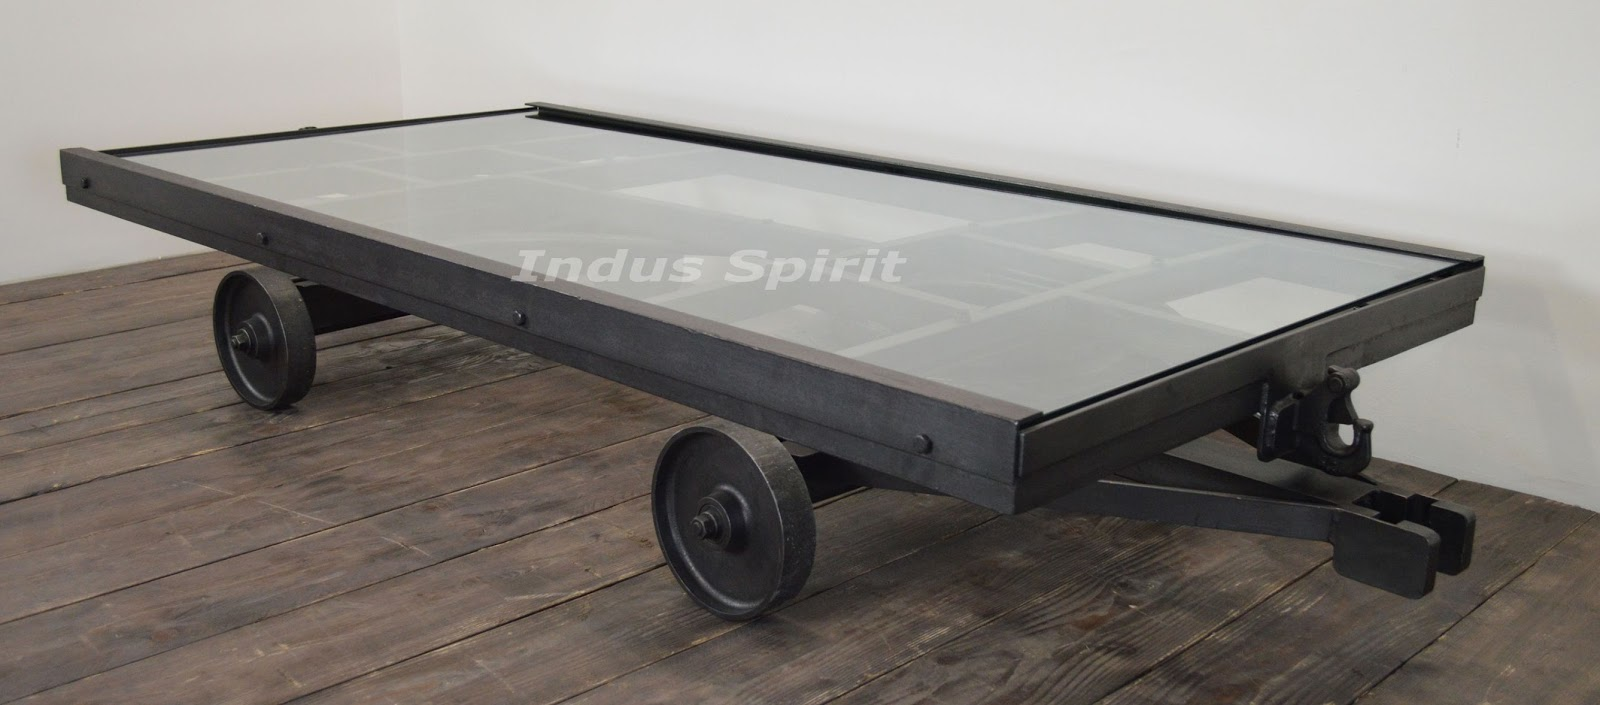 Table basse chariot industriel # Table Basse Industrielle Chariot Ptt